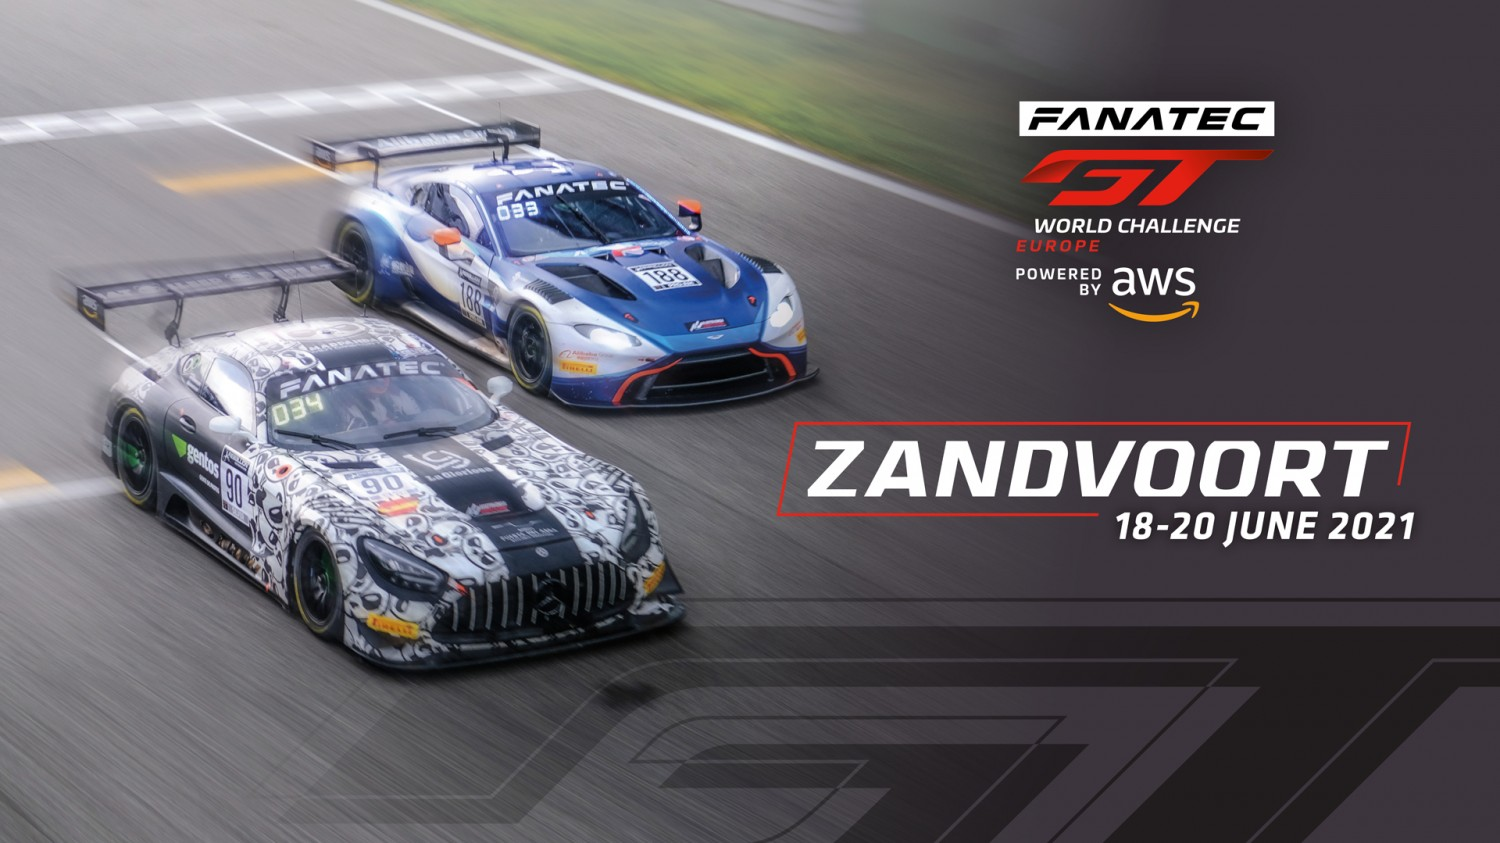 Sprint Cup takes centre stage as Fanatec GT World Challenge Europe Powered by AWS plots a course for Zandvoort